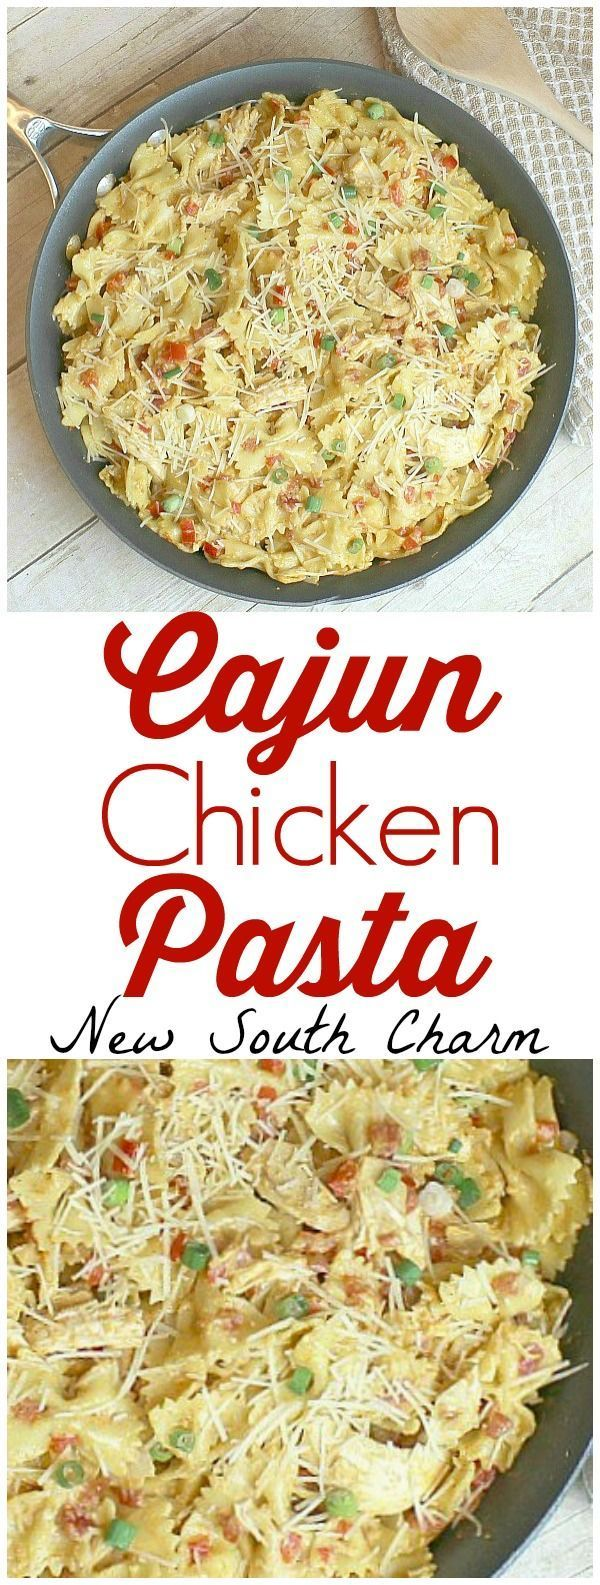 One Of The Best Dinner Recipes Ever This Cajun Chicken Pasta Is A Fast